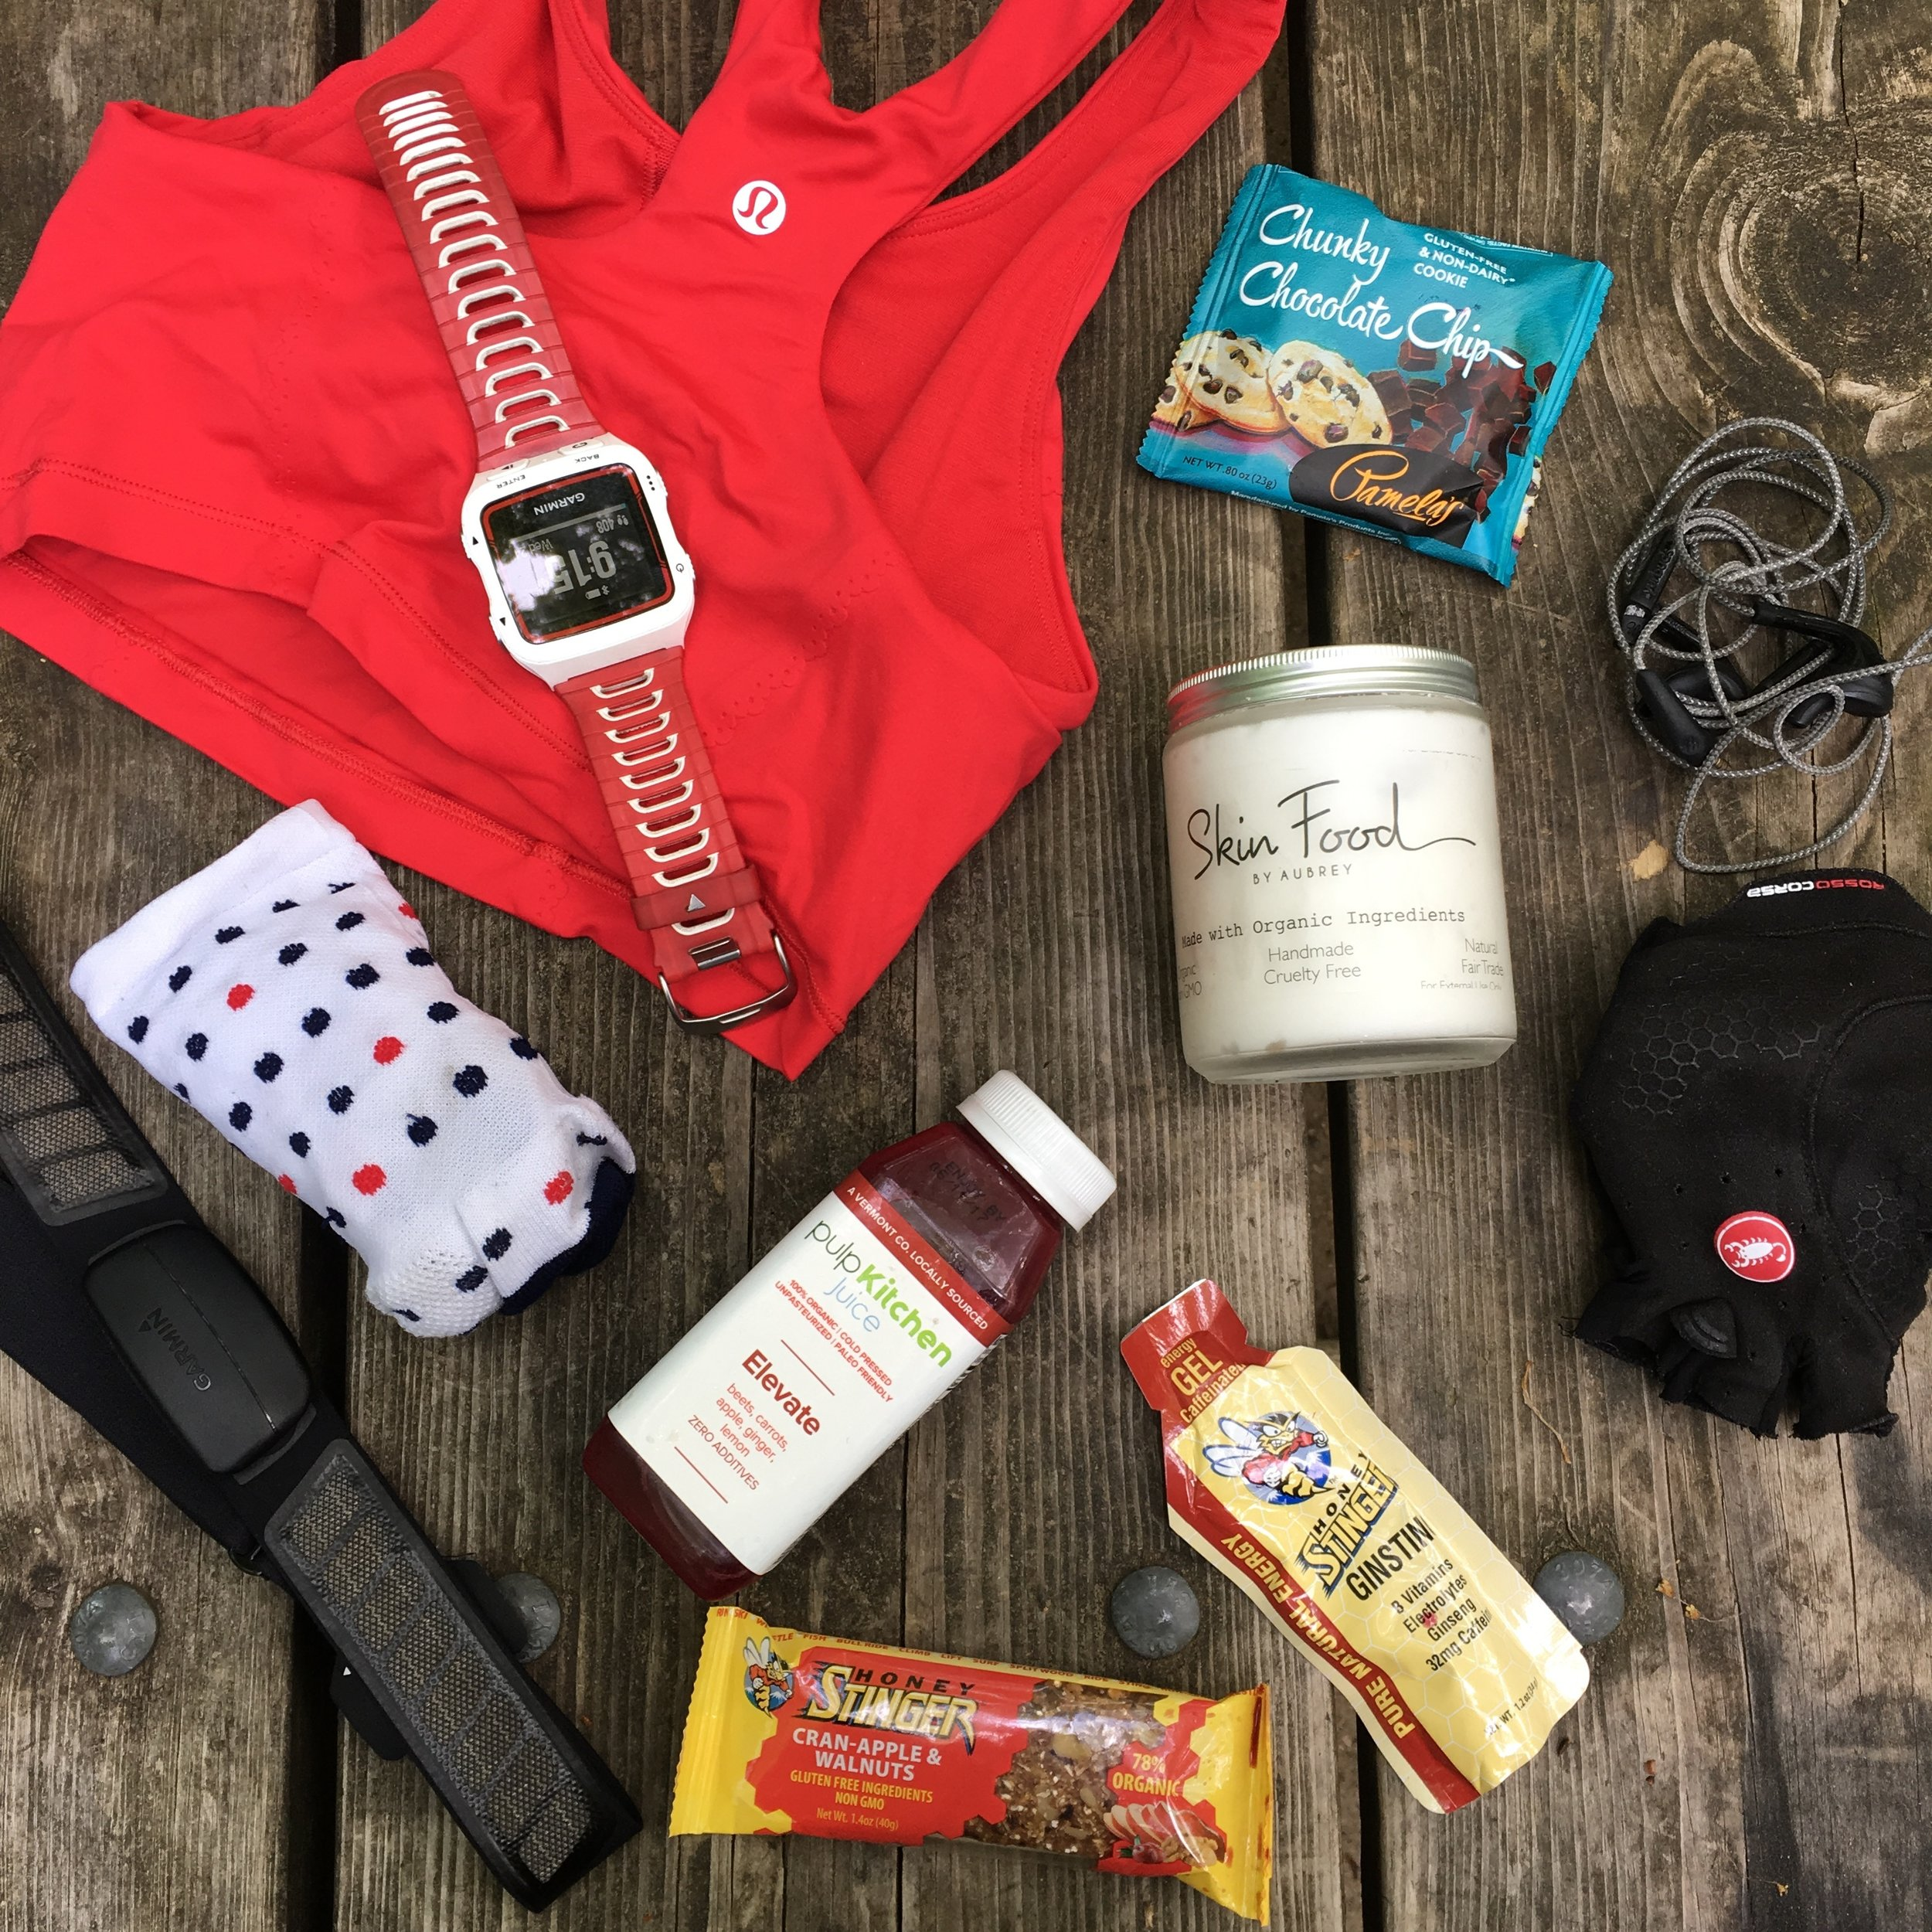 Pre ride spread. Kept my muscles fresh with SkinFood's organic muscle rub